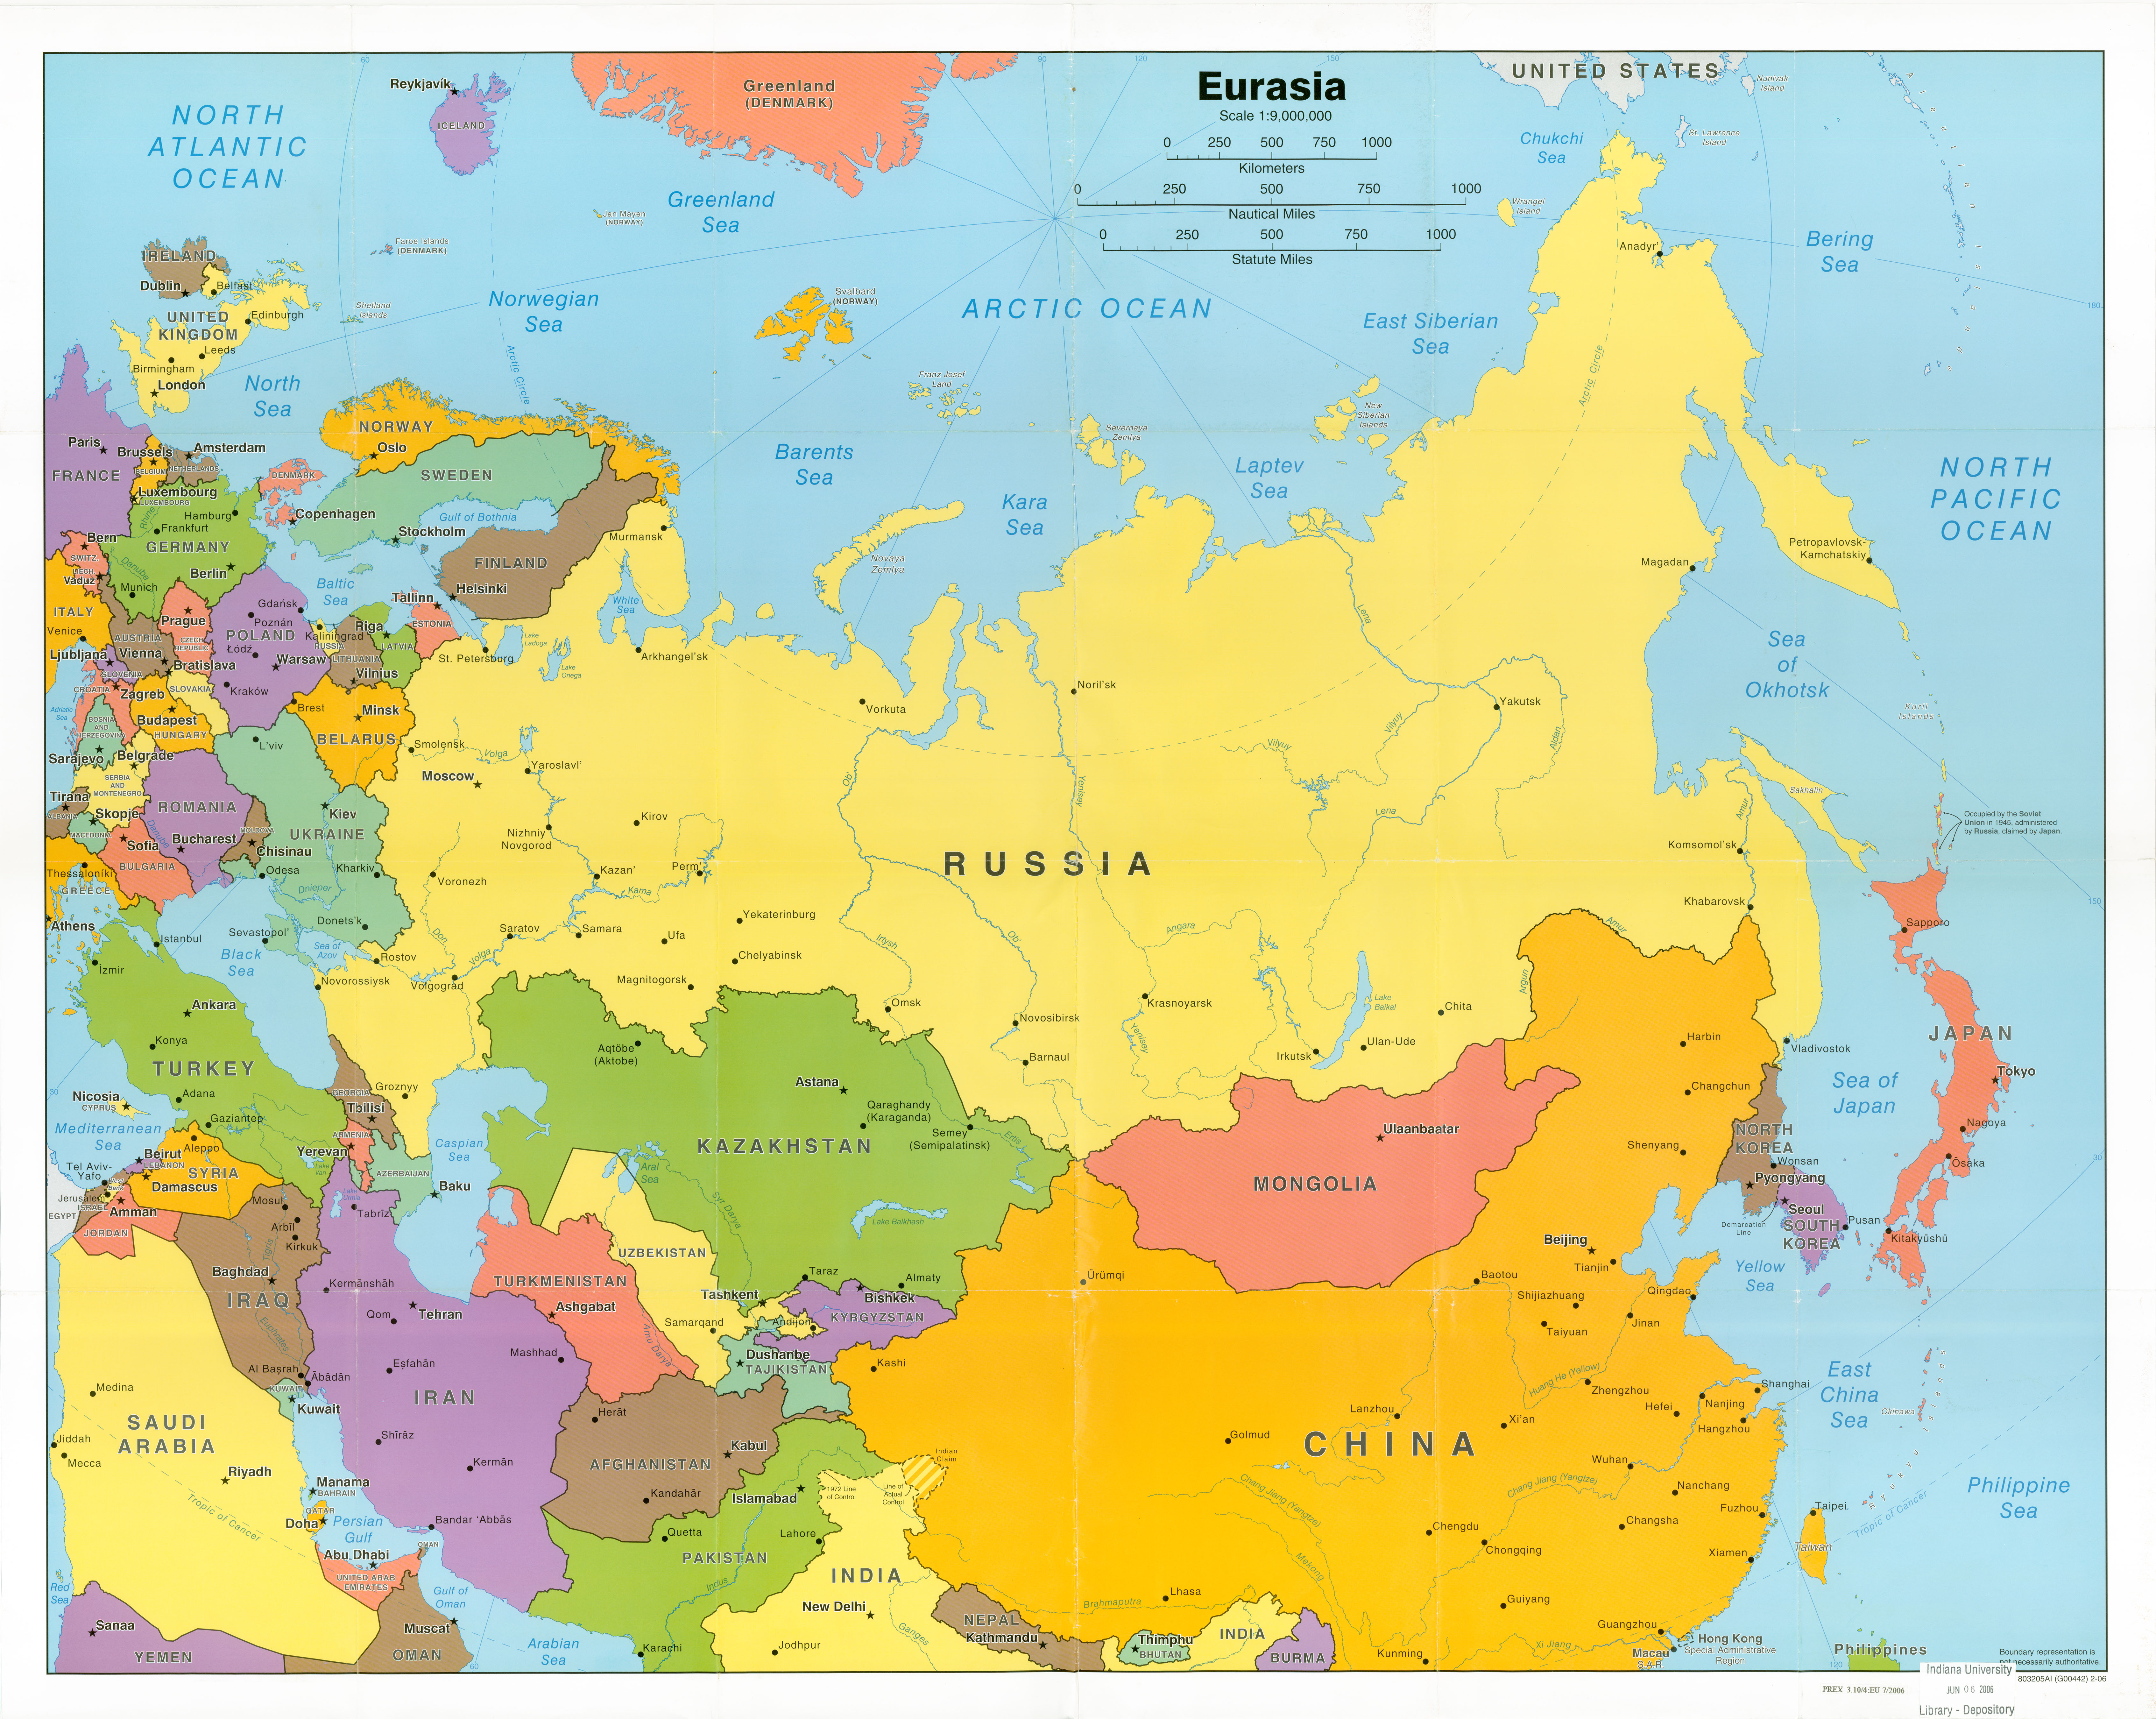 USD World Maps - World political map 2014